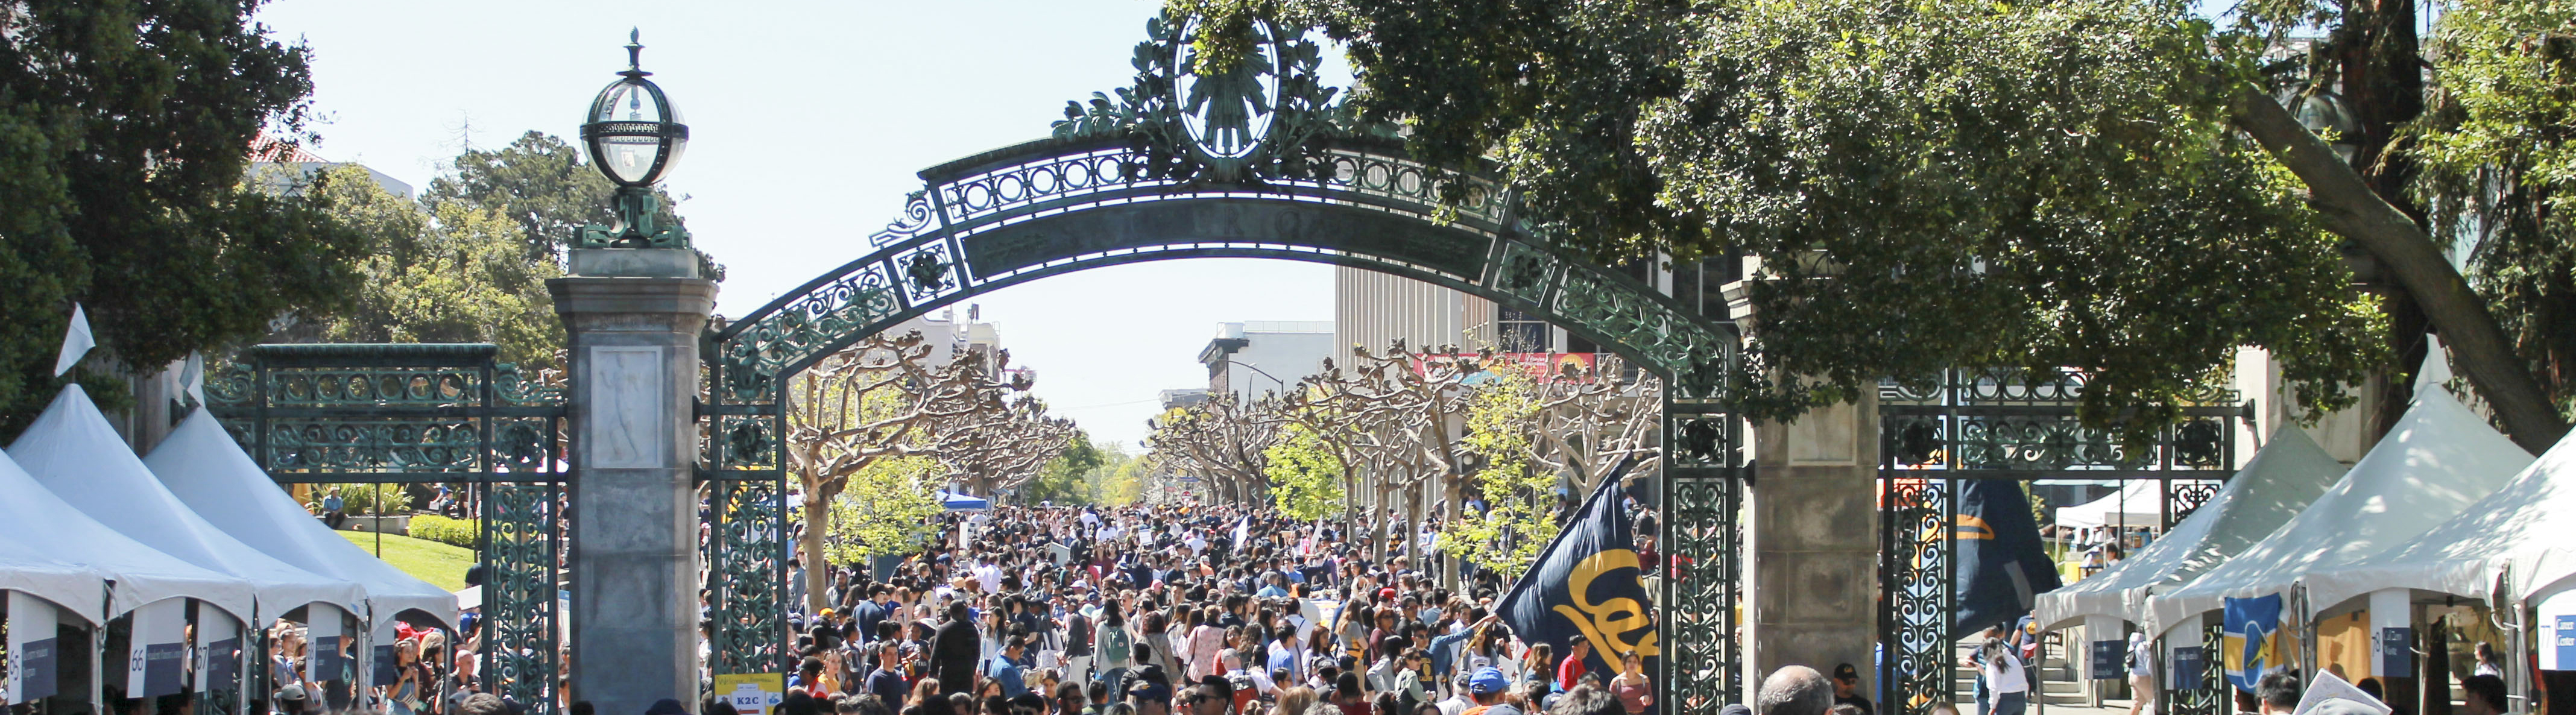 Sather gate on the UC Berkeley campus with many people walking underneath